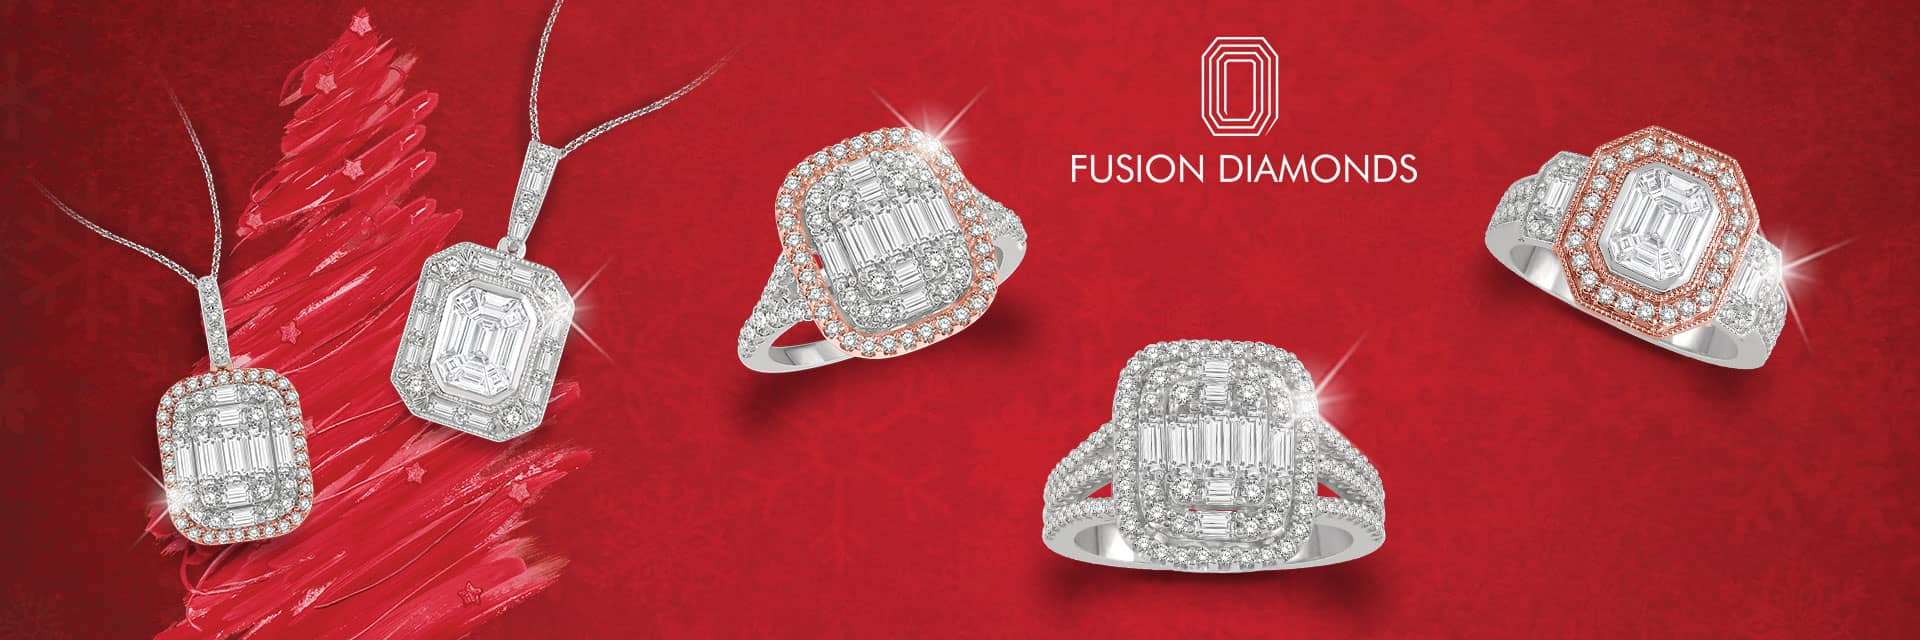 Jewelry Manufacturer Sunlight - brand description and product catalog